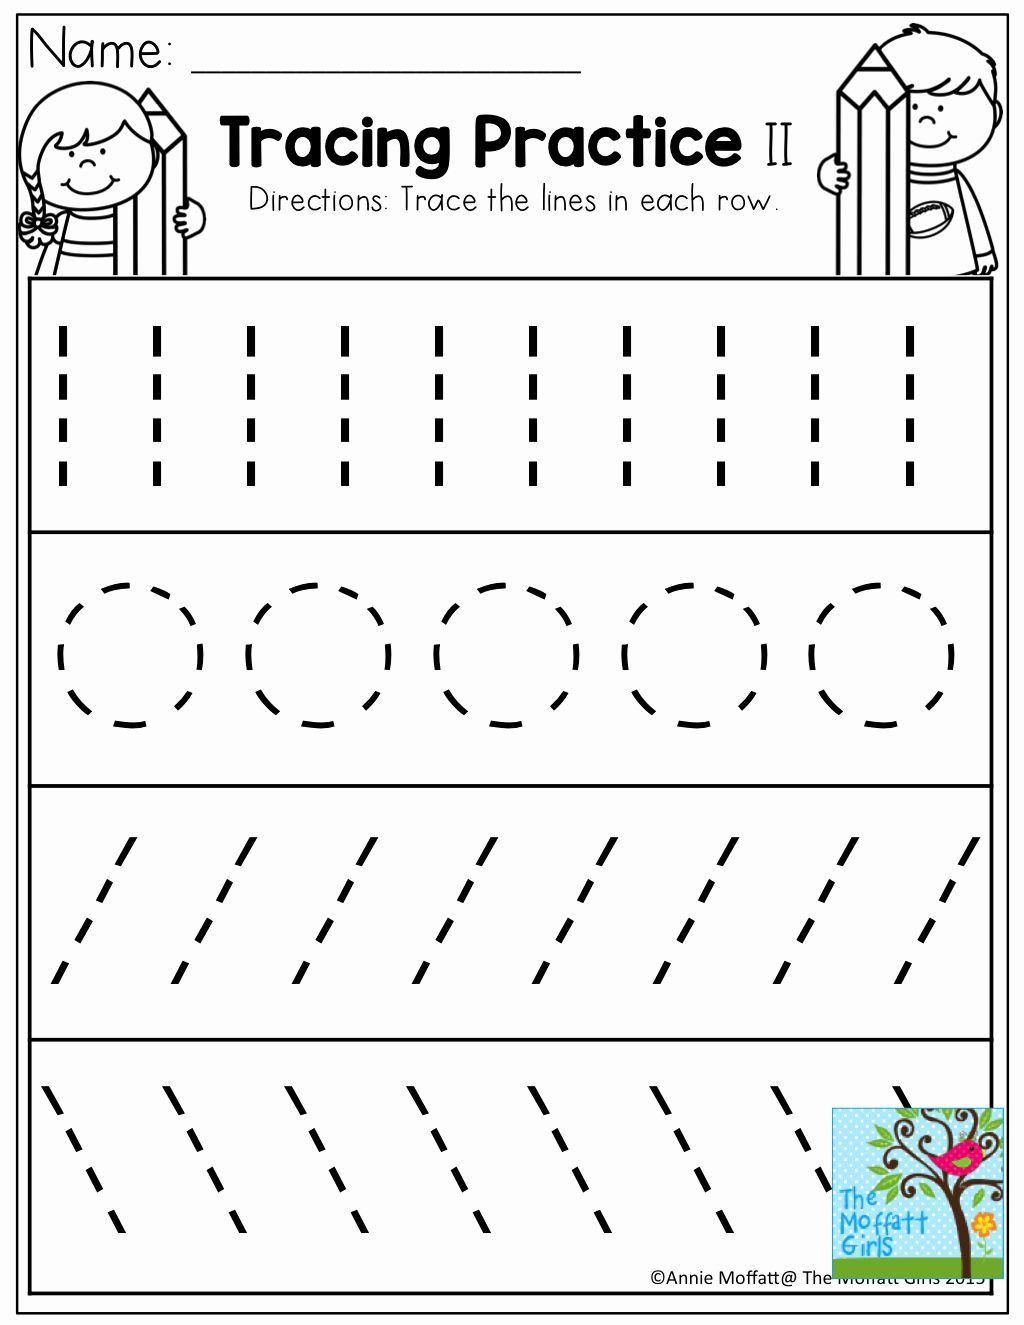 Alphabet Coloring Worksheets For 3 Year Olds In 2020 for Alphabet Tracing Worksheets For 2 Year Olds